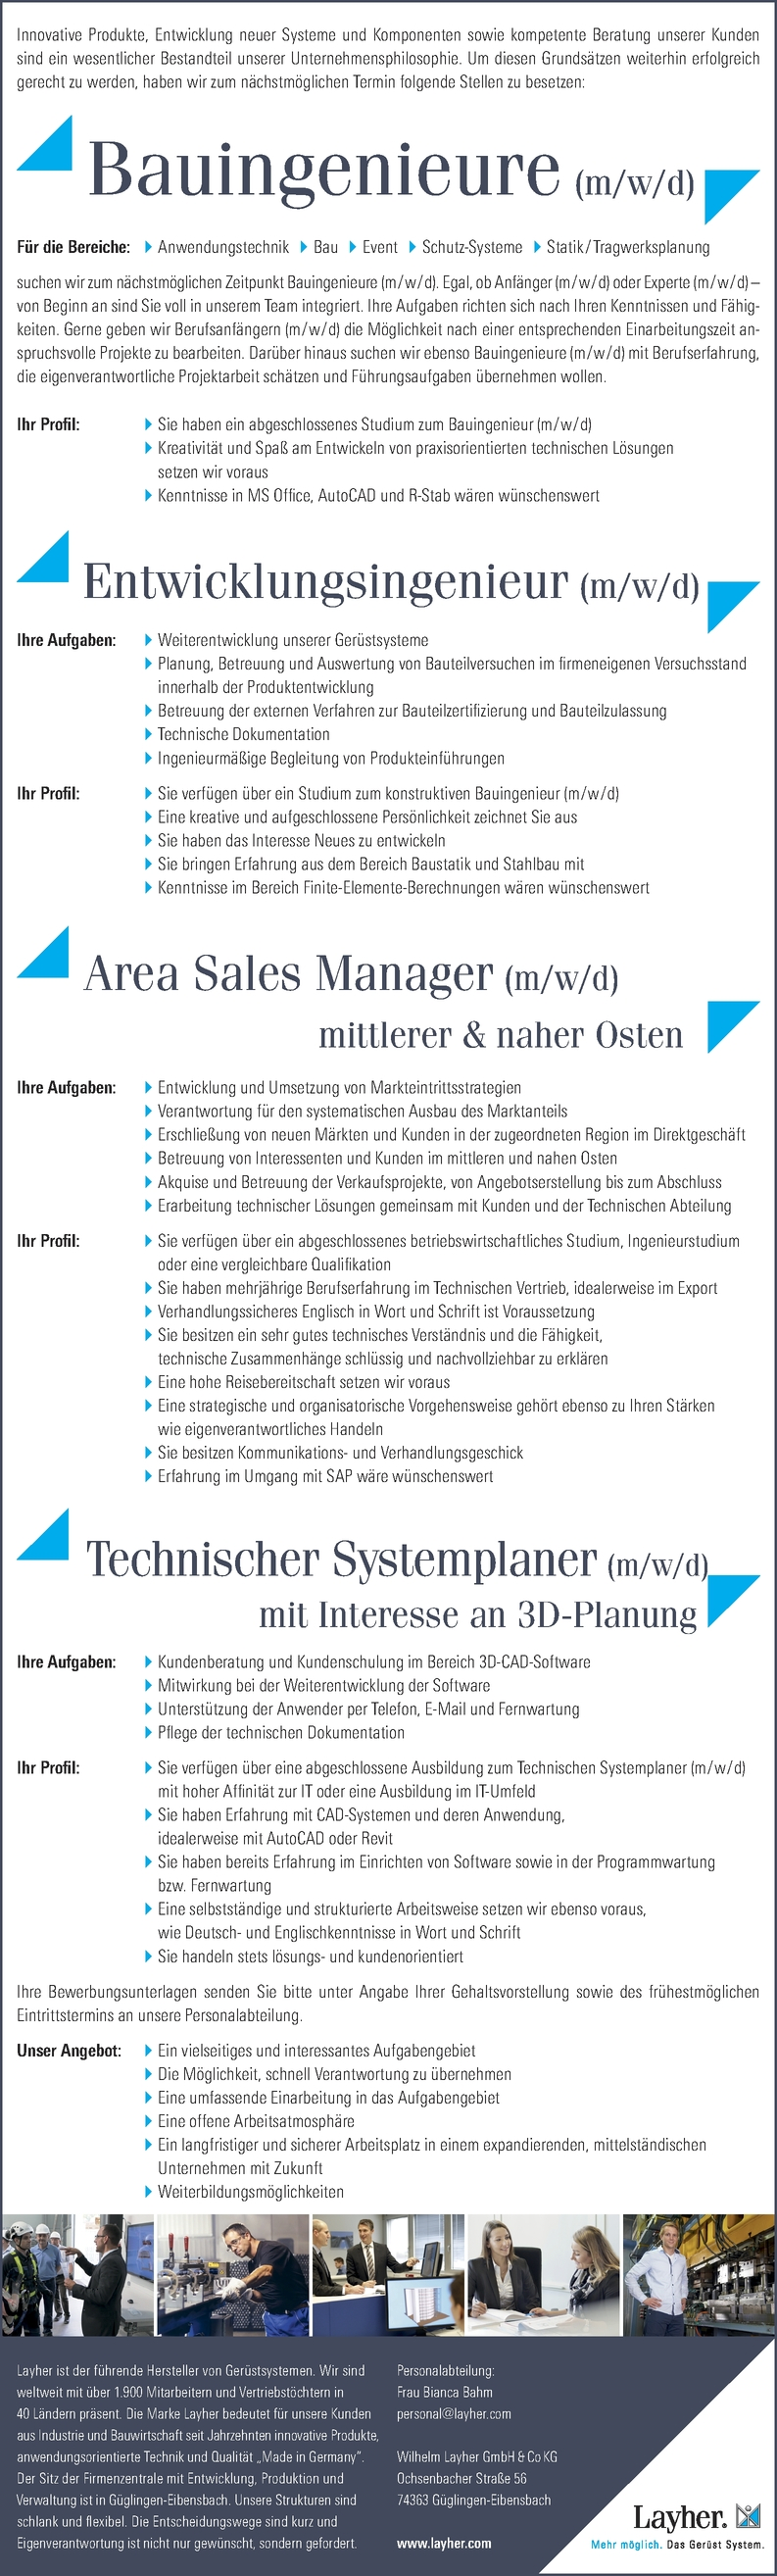 Bauingenieur/in